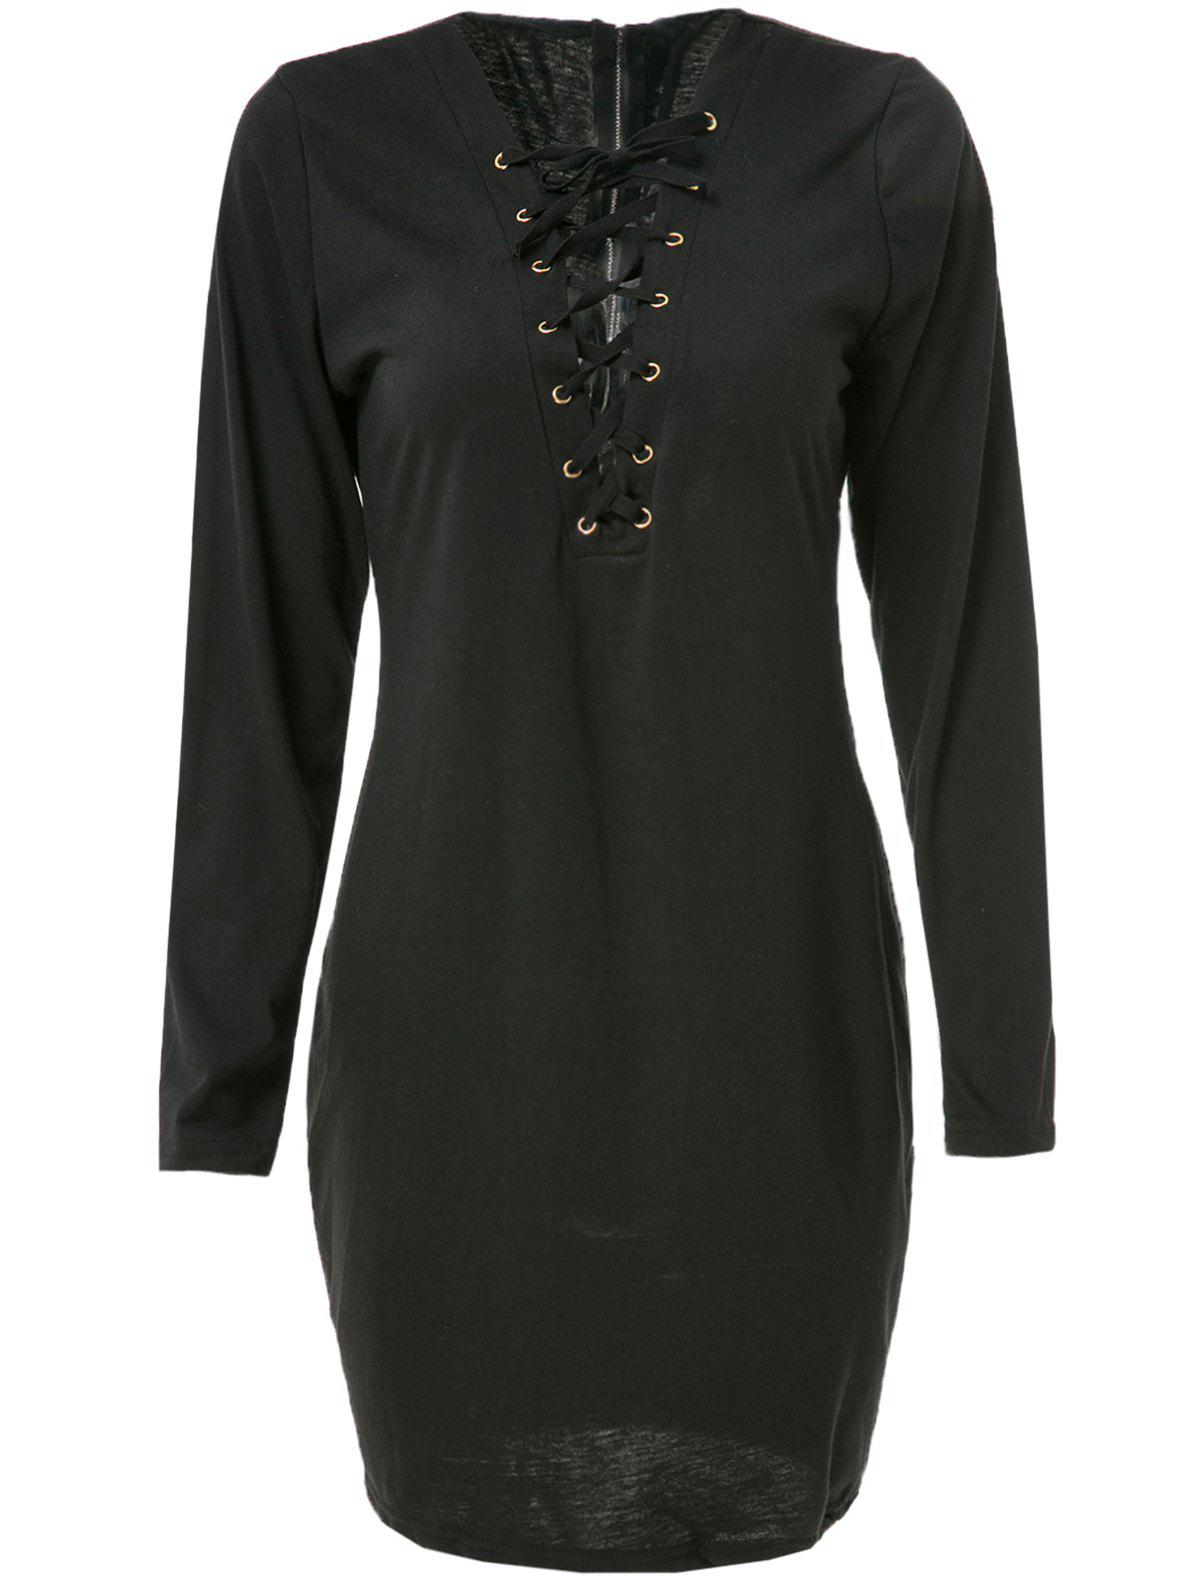 Sexy Long Sleeve Plunging Neck Black Hollow Out Lace-Up Women's Dress - BLACK XL